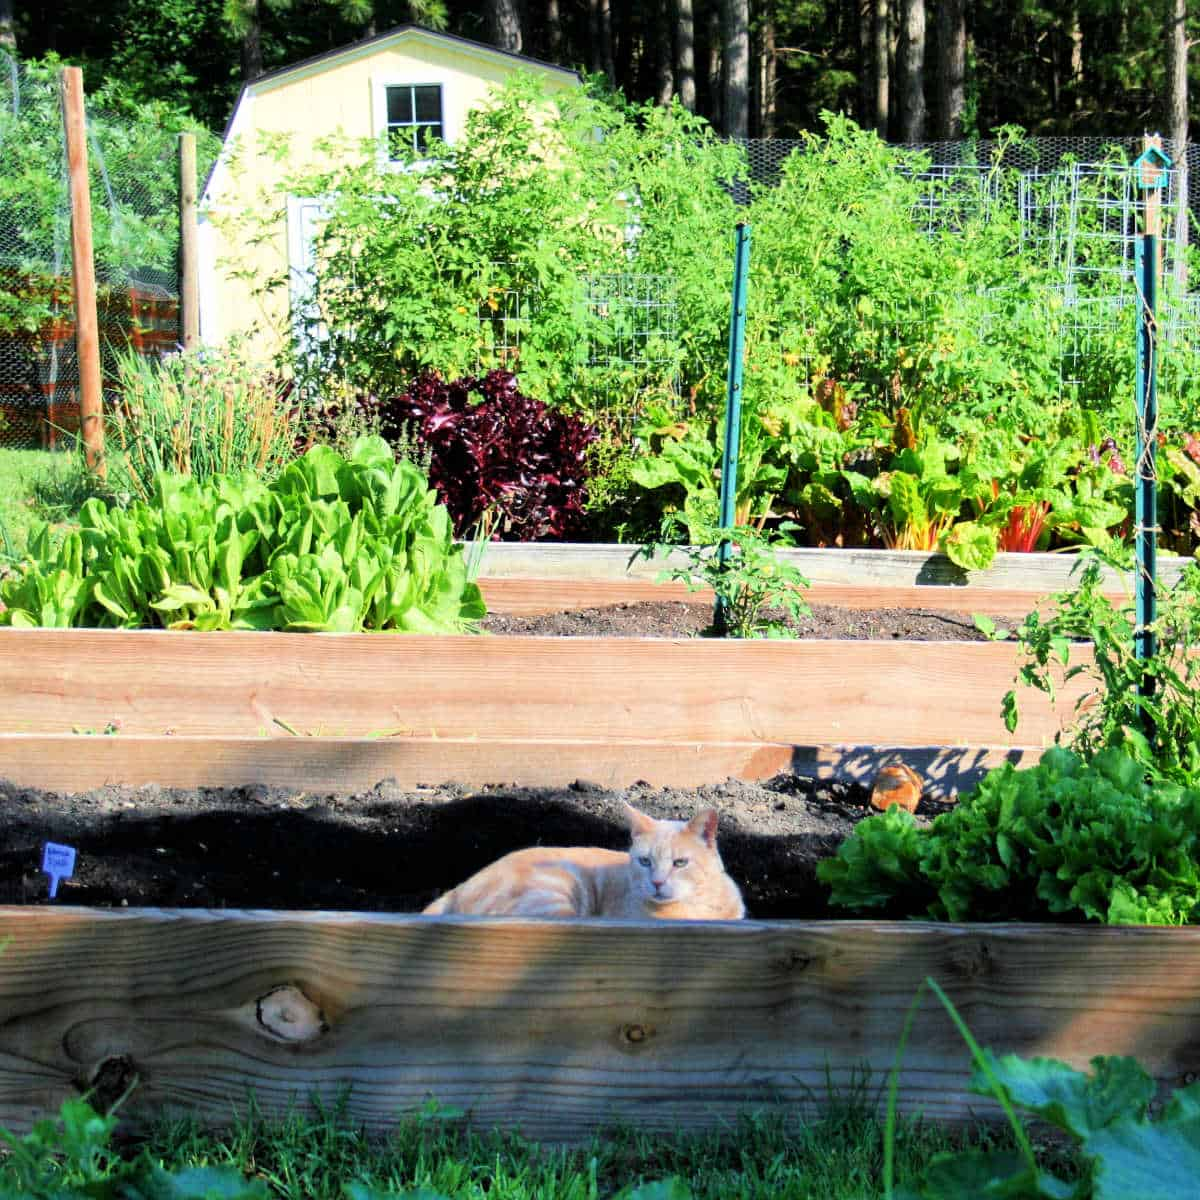 a ginger cat laying in a raised bed in a vegetable garden with a yellow shed in the background